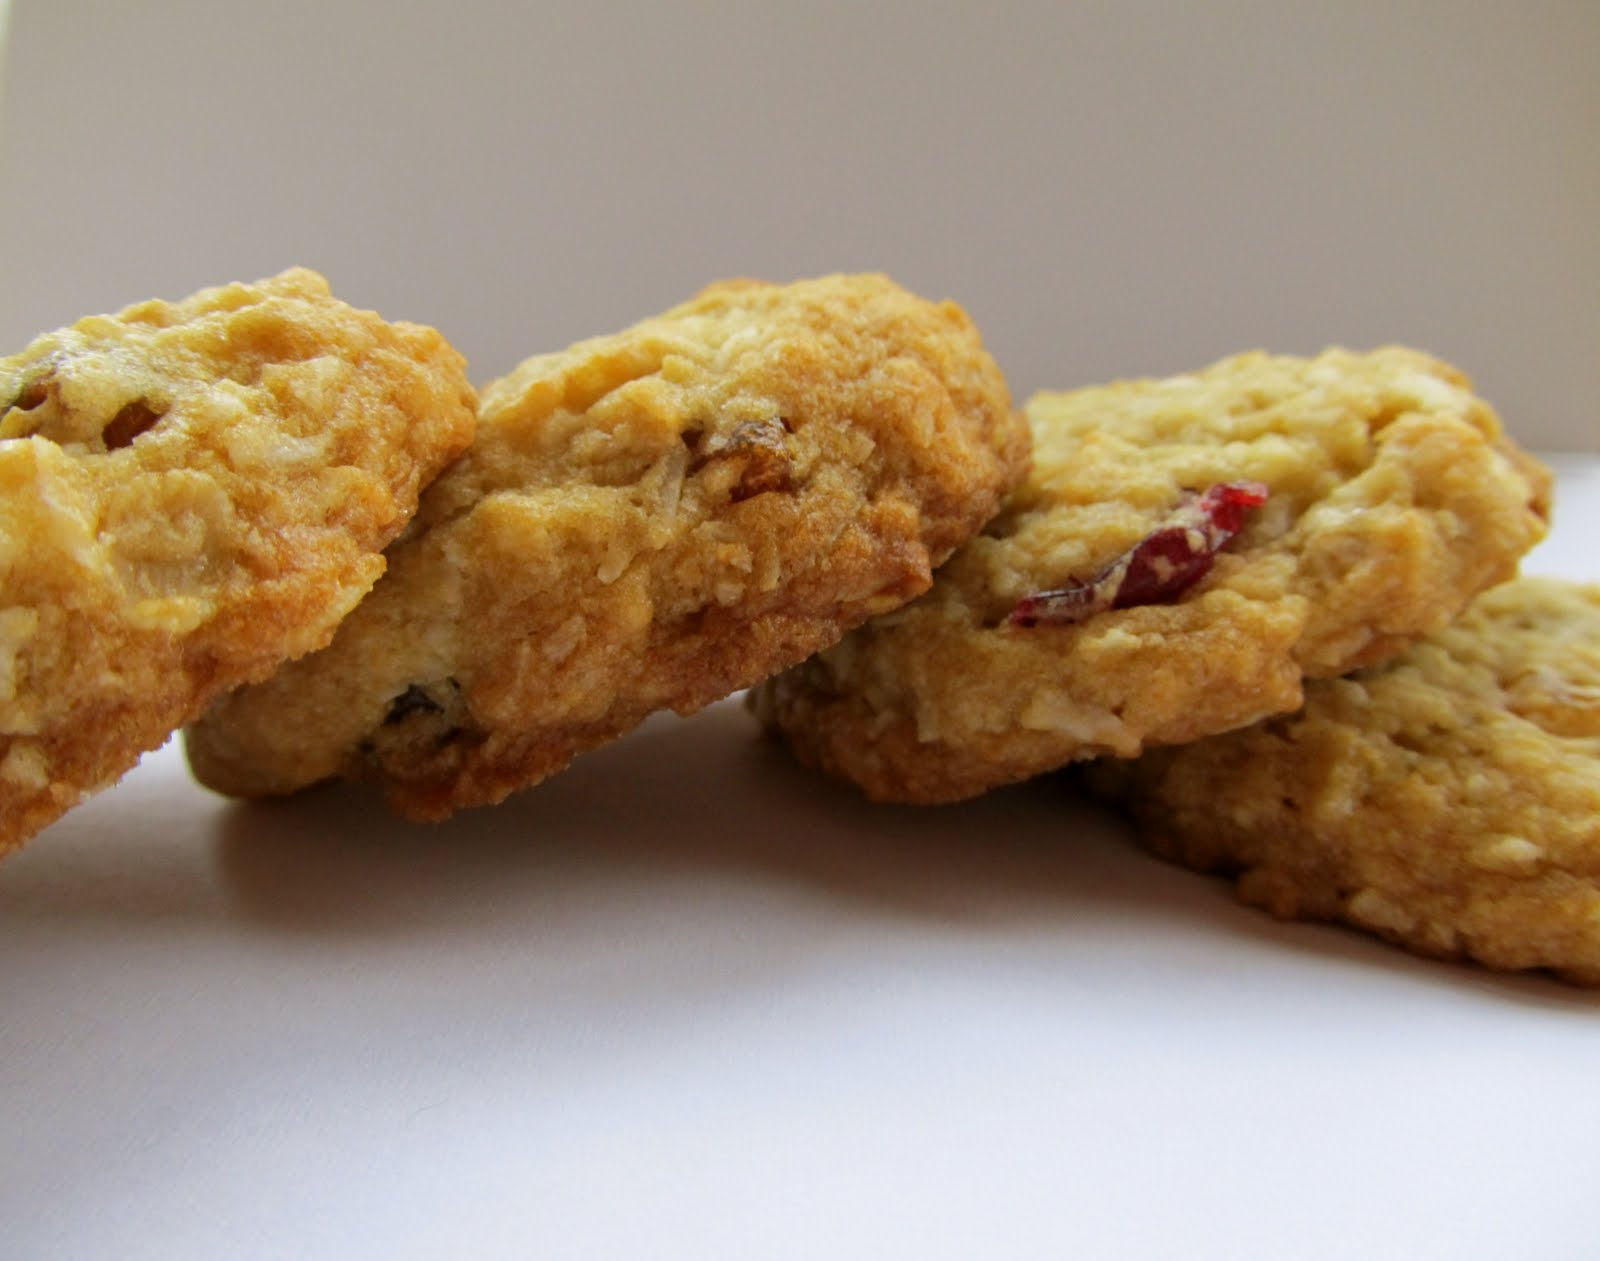 Mary Quite Contrary Bakes: Vegan Cranberry Oatmeal Coconut Cookies